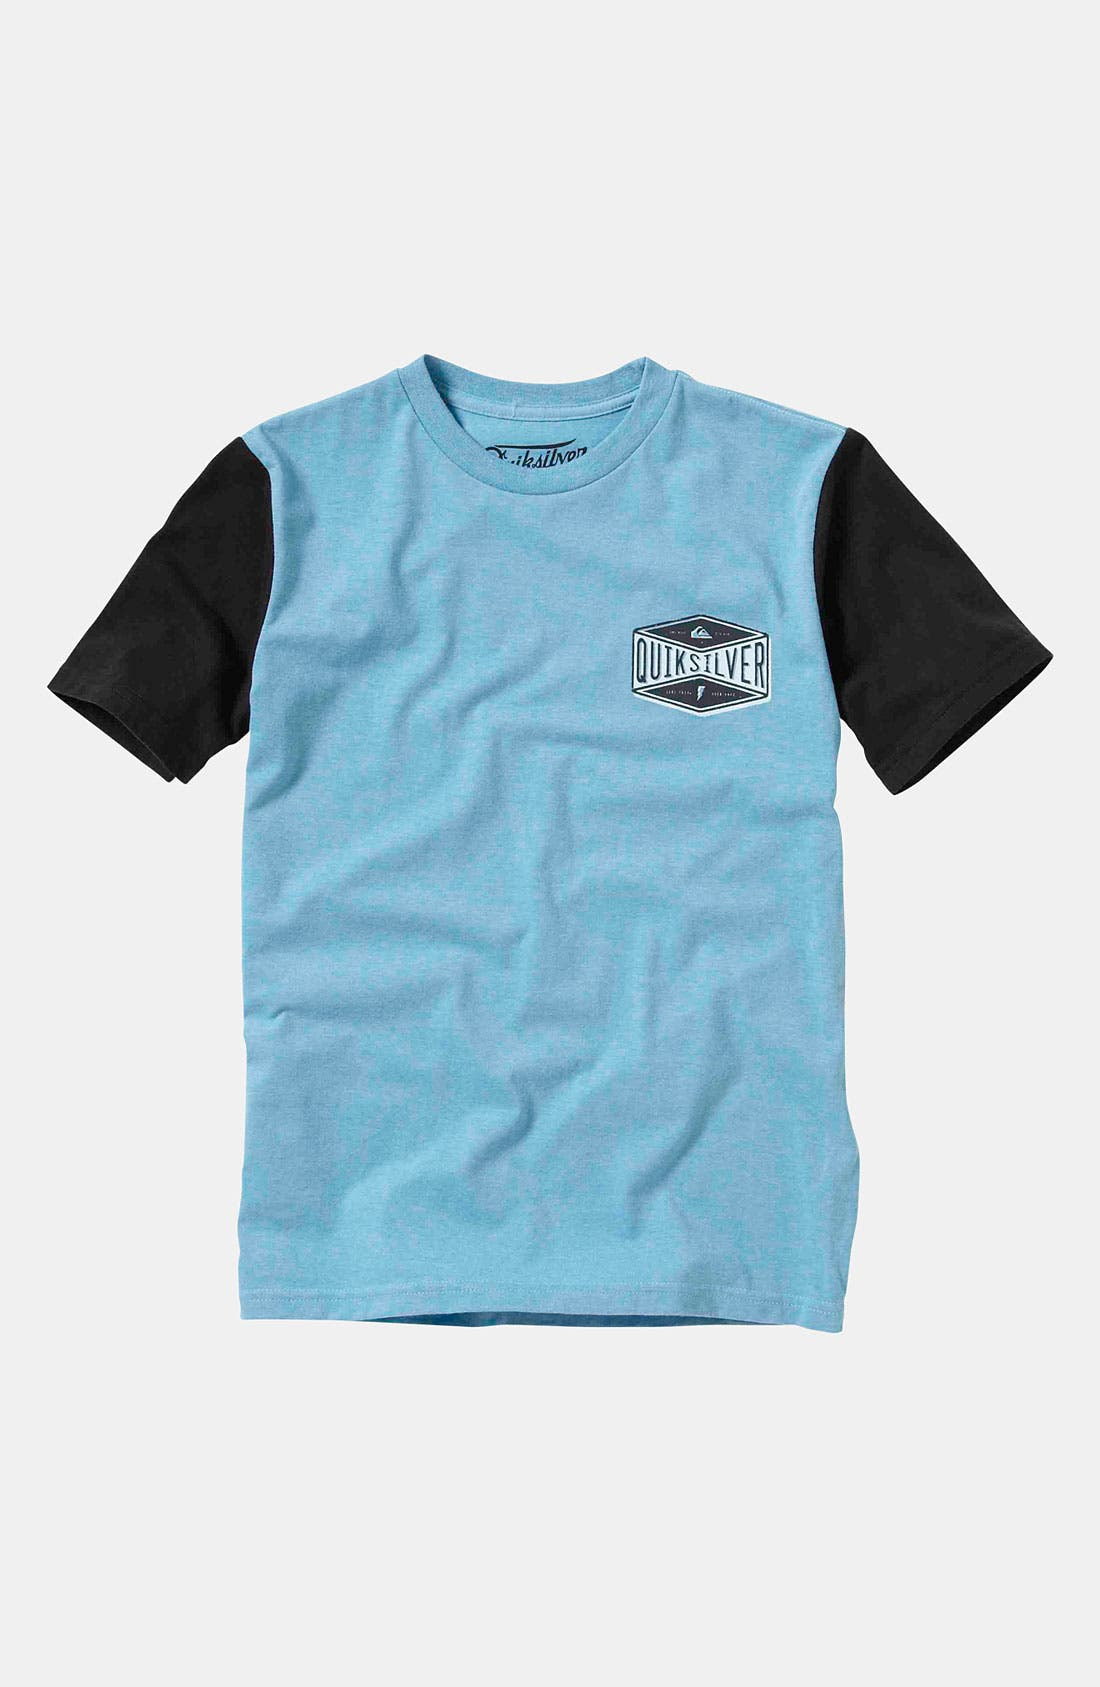 Alternate Image 1 Selected - Quiksilver 'Surf Faster' Crewneck Top (Big Boys)